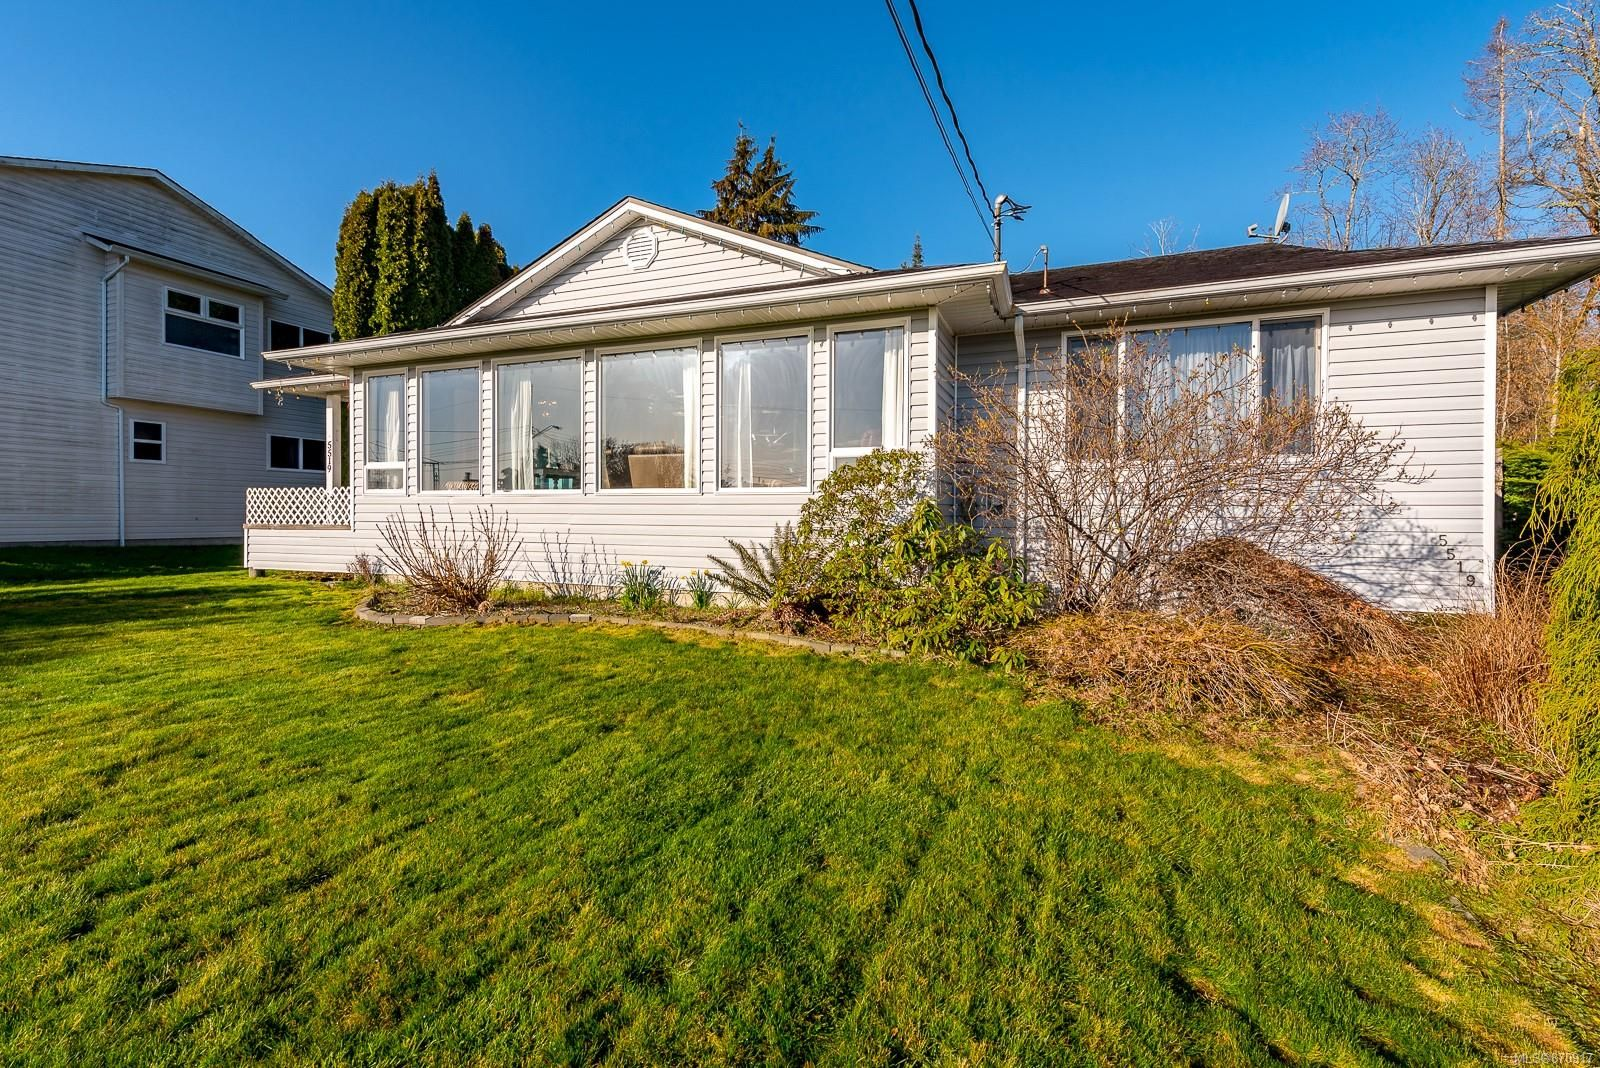 Main Photo: 5519 Tappin St in : CV Union Bay/Fanny Bay House for sale (Comox Valley)  : MLS®# 870917